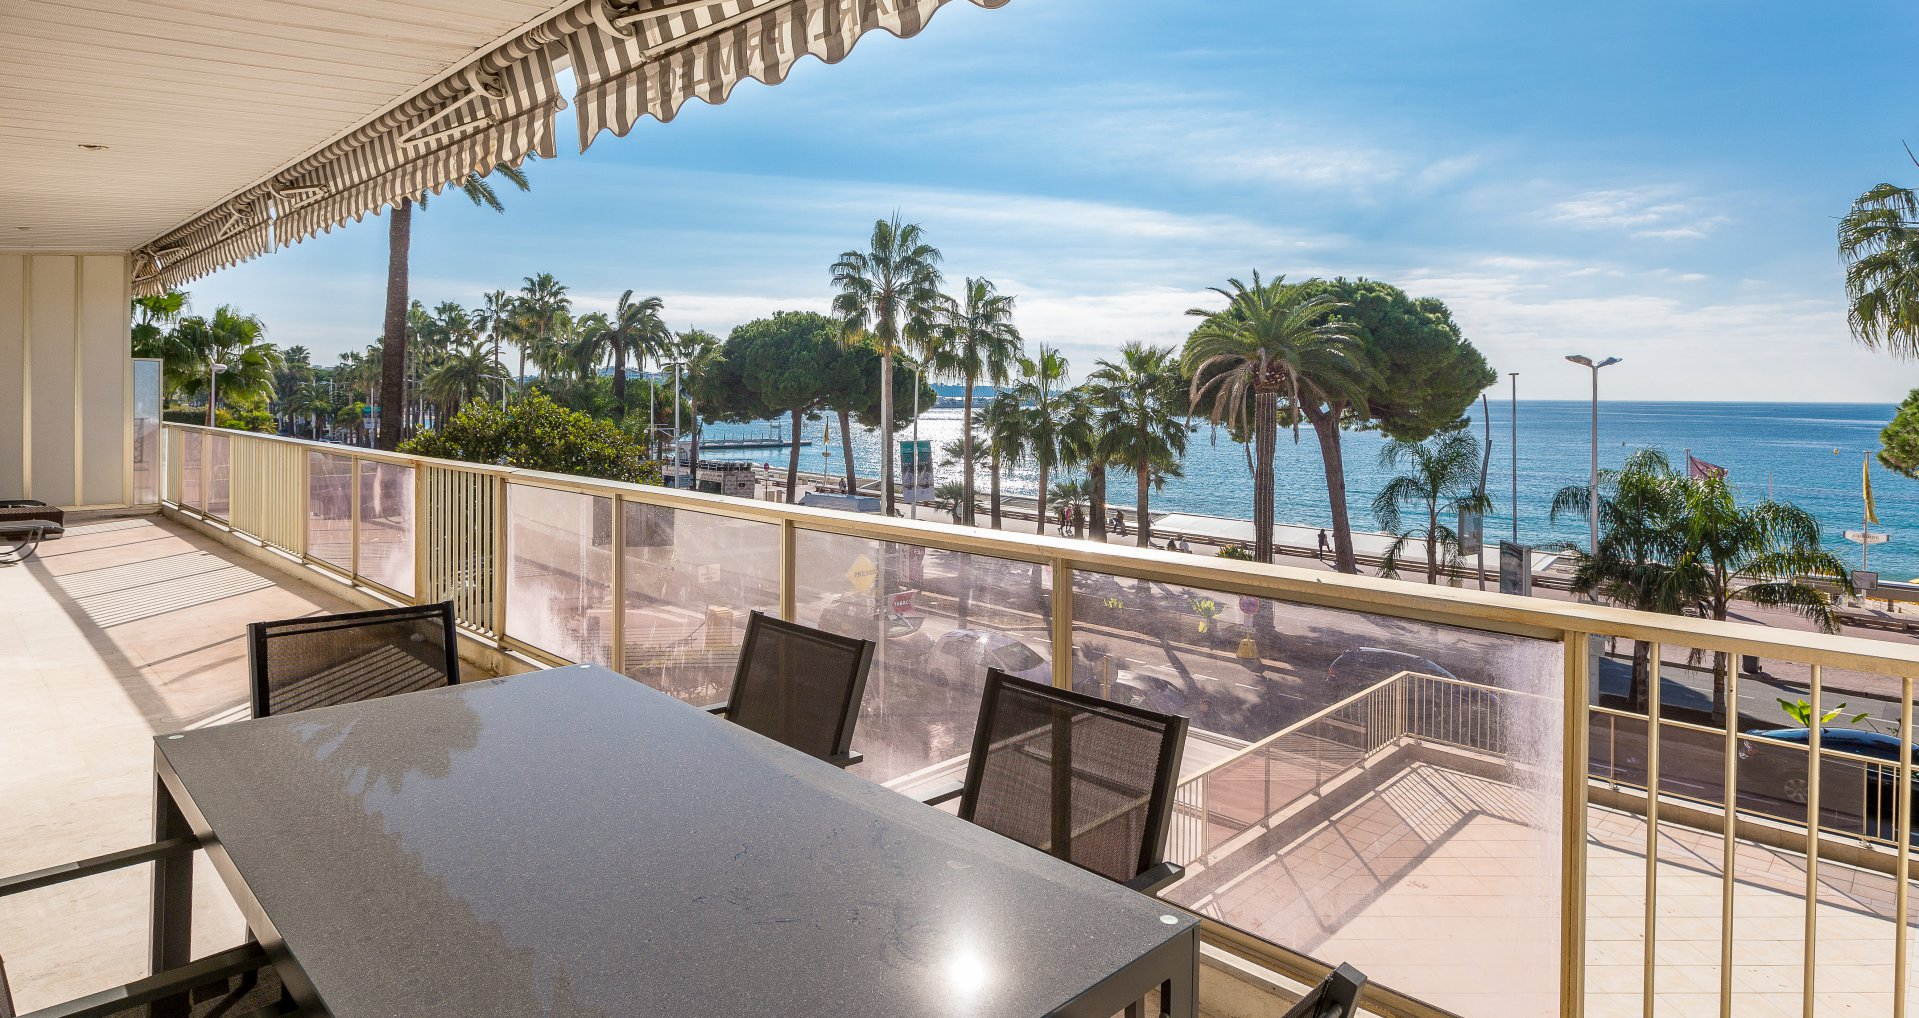 Appartement en vente Cannes